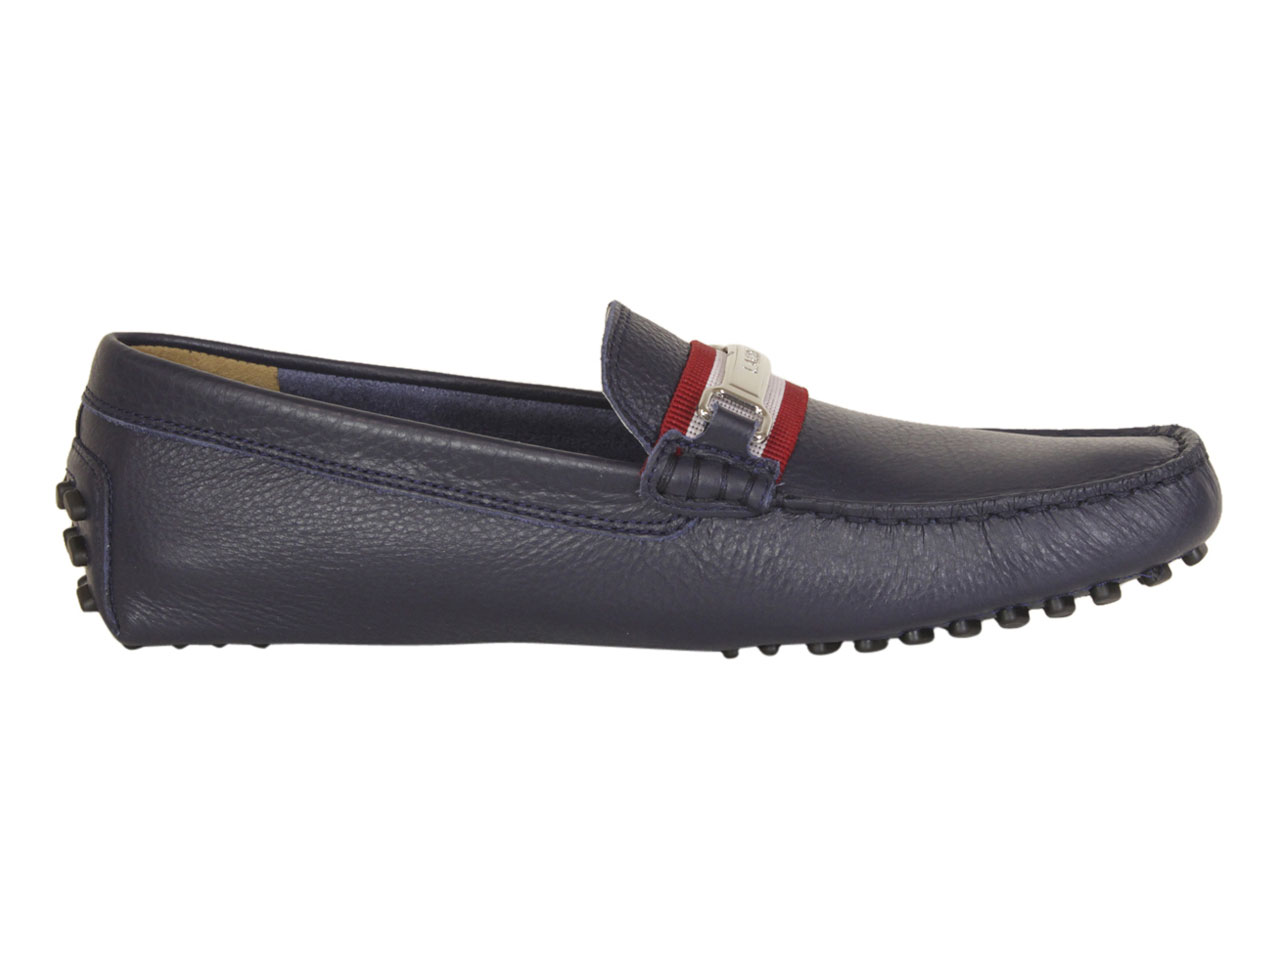 LACOSTE Men's Loafers Ansted 119 In Navy Red | eBay